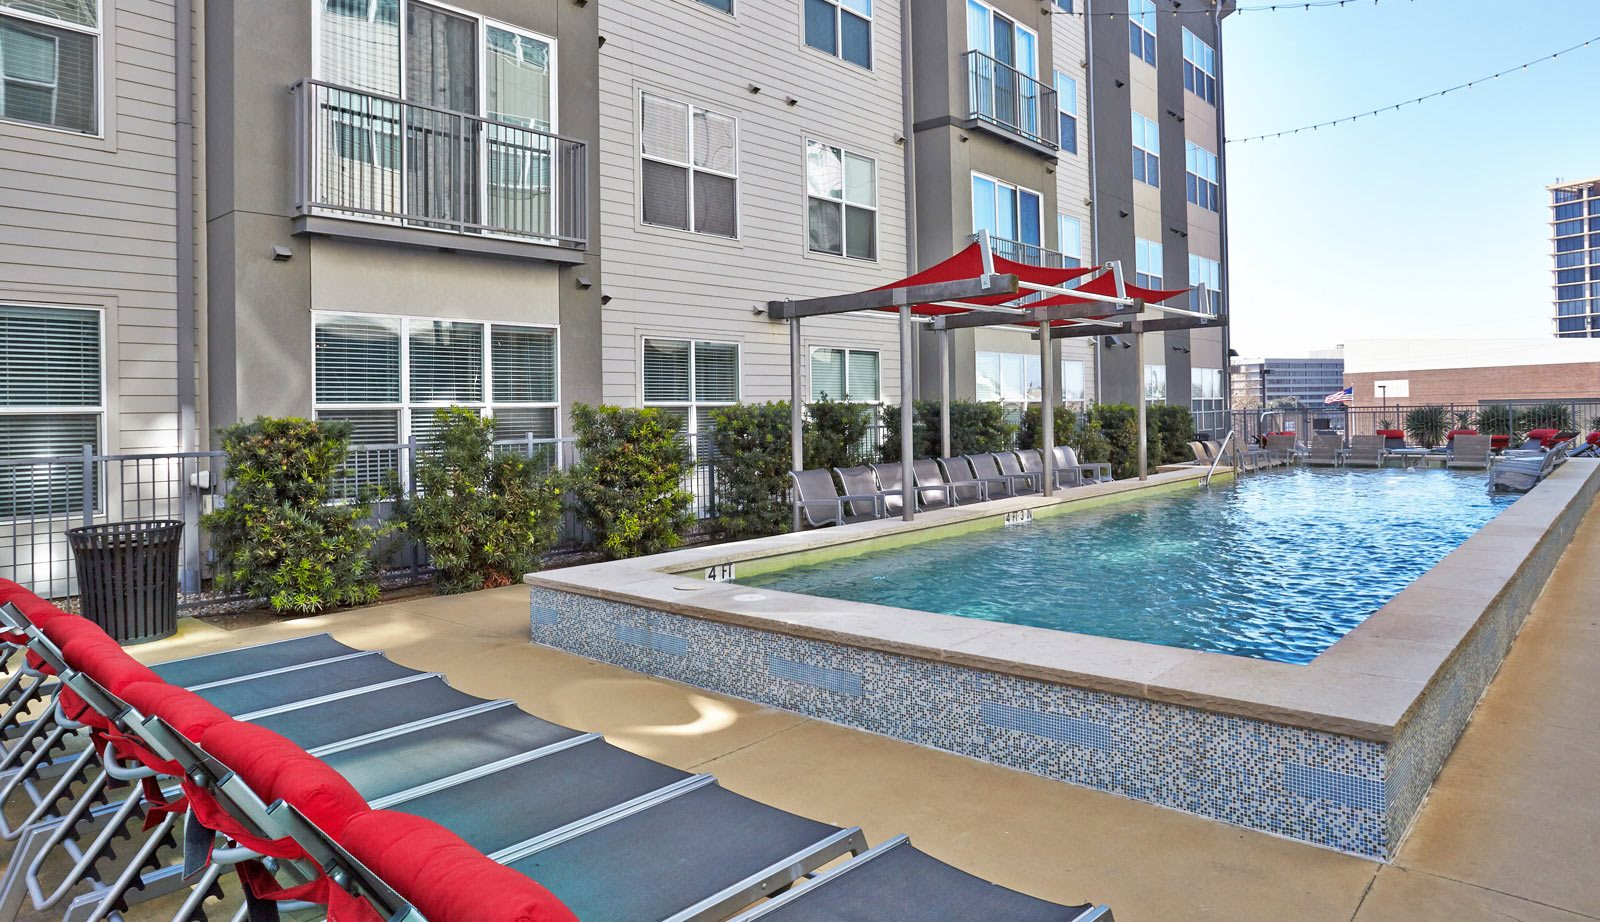 outdoor swimming pool with sundeck | Mockingbird Flats Apartments in Dallas, TX